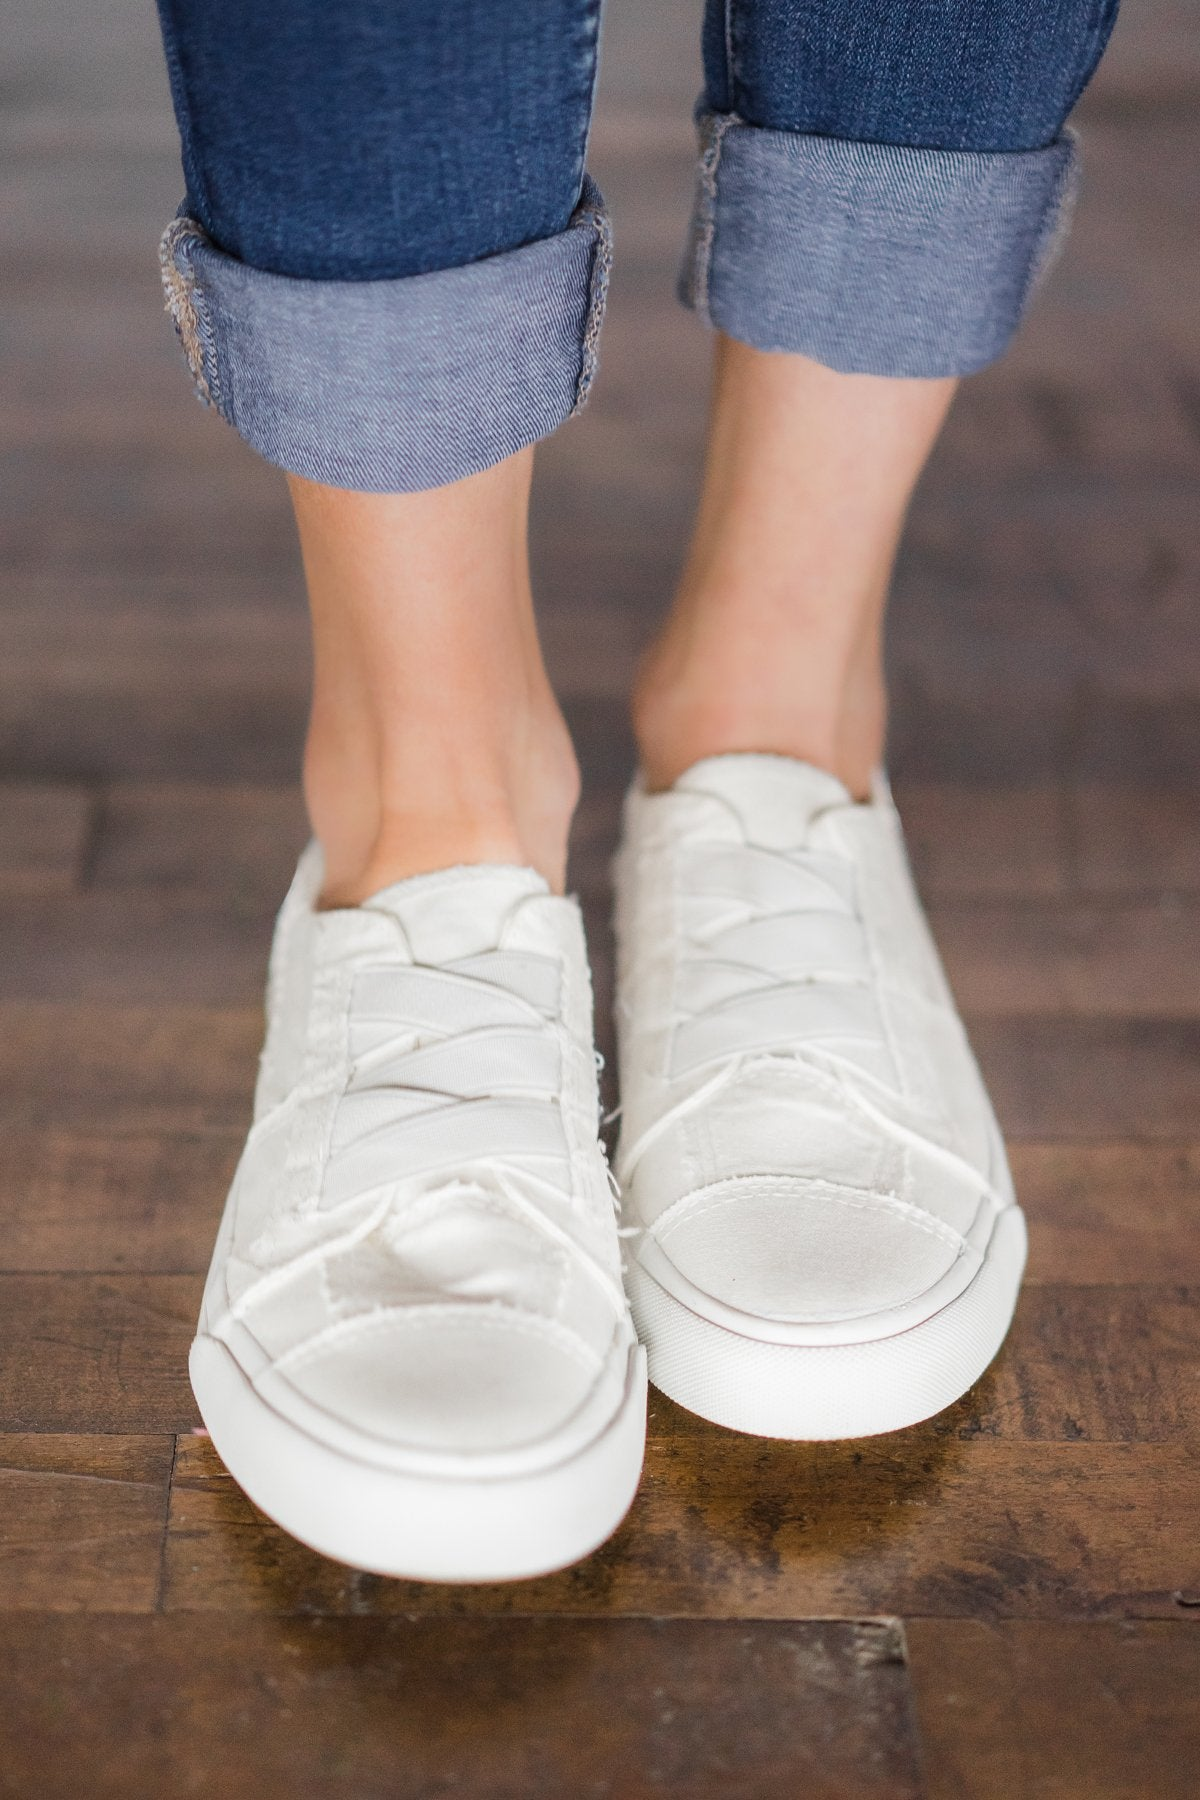 Blowfish - Marley White Sneakers – The